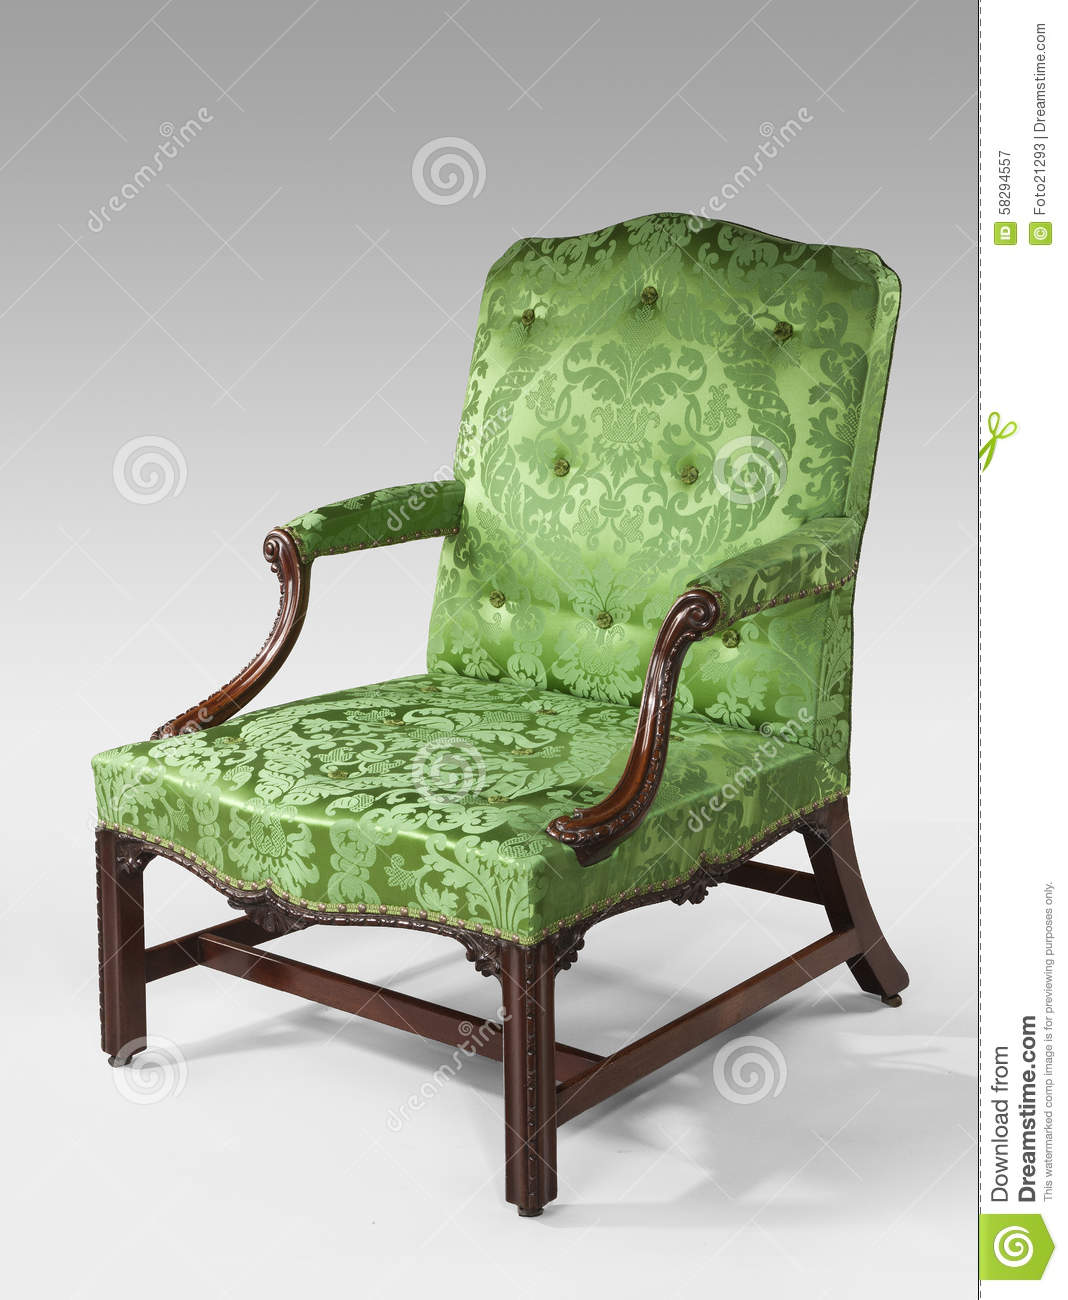 Green Upholstered Chair Antique Arm Chair Light Green Upholstery On Light Background Stock